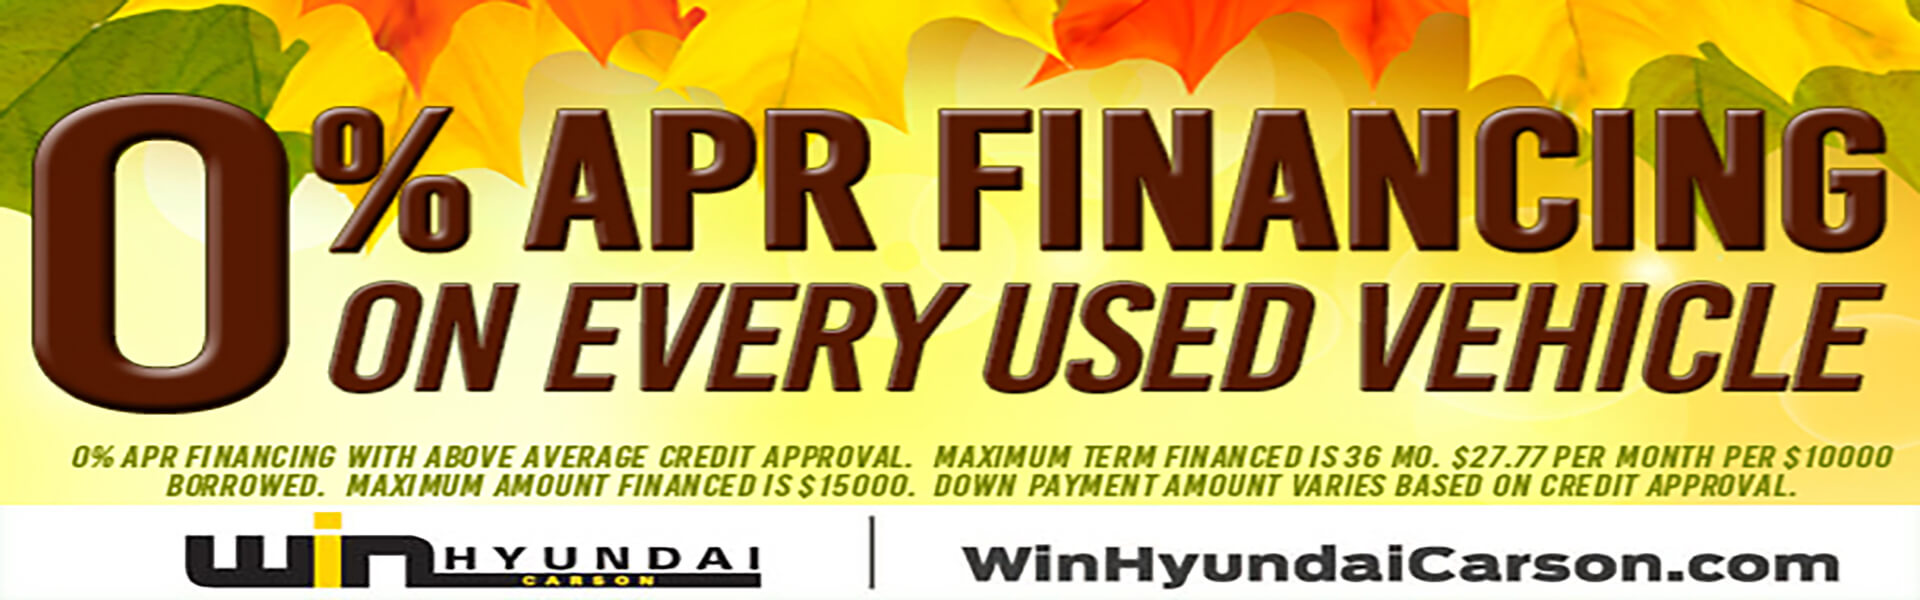 0% APR Financing - Hyundai